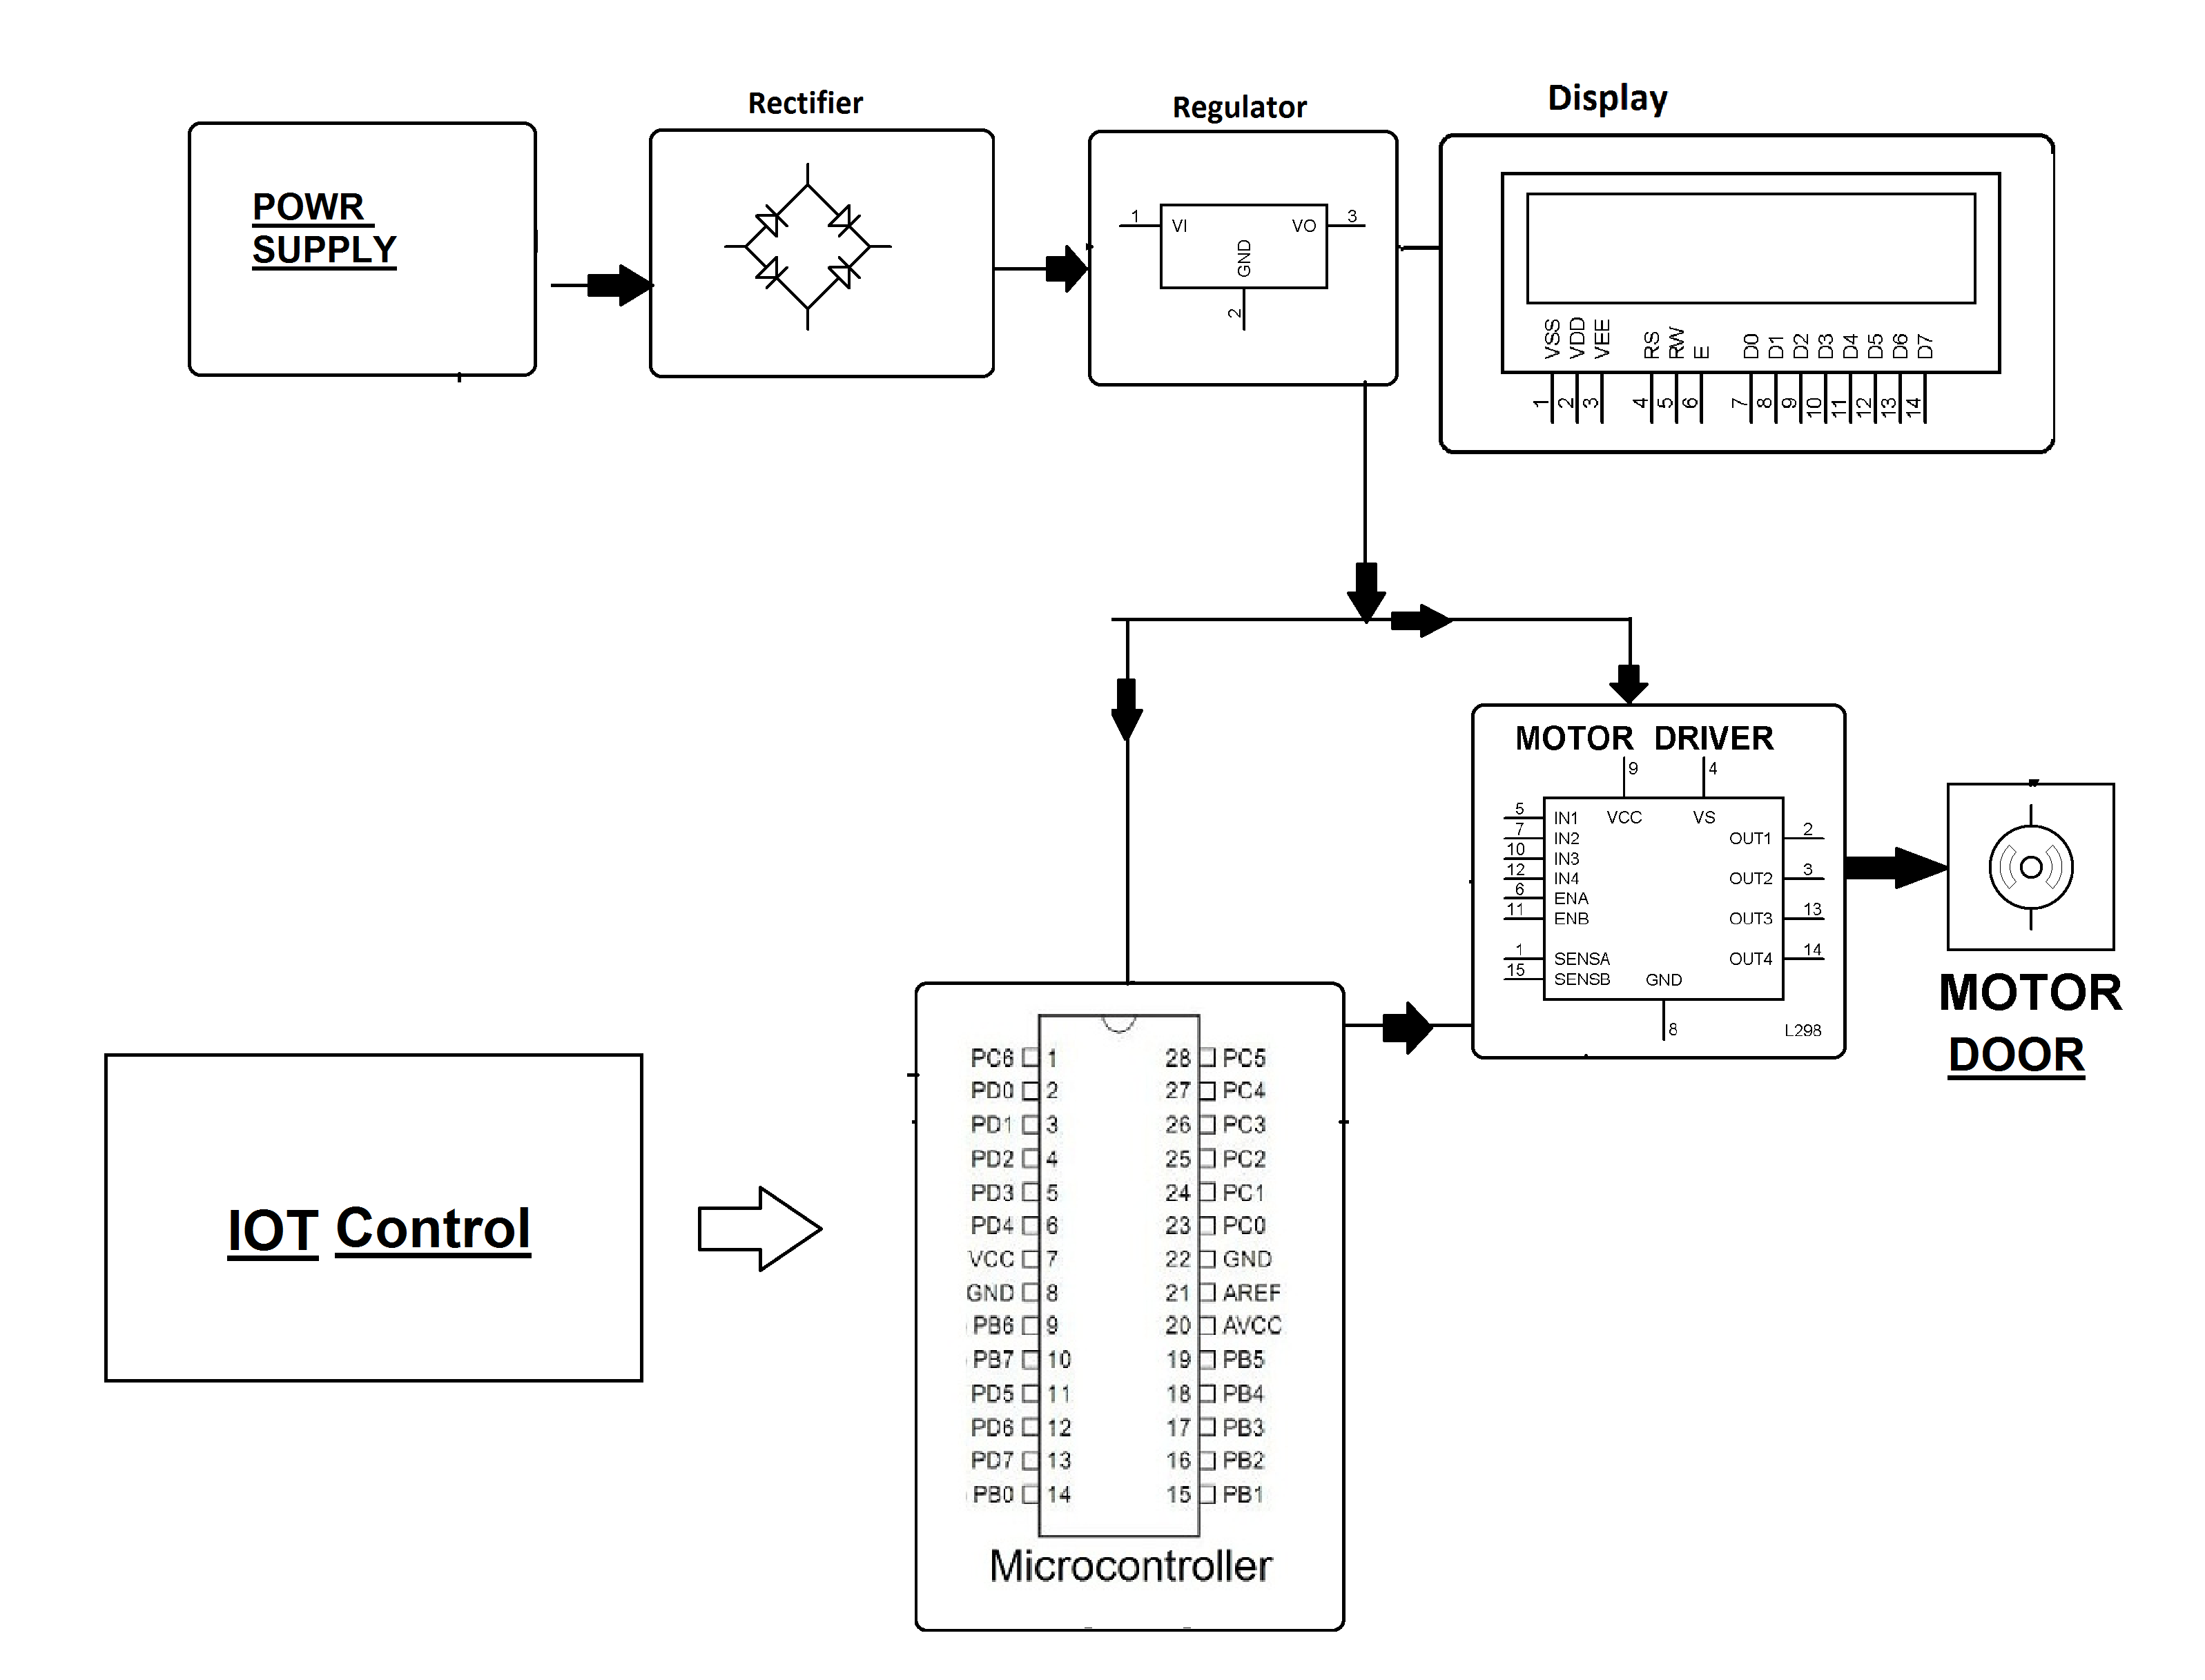 electronic number lock circuit diagram 2003 chevy tahoe bose stereo wiring iot door opener nevonprojects